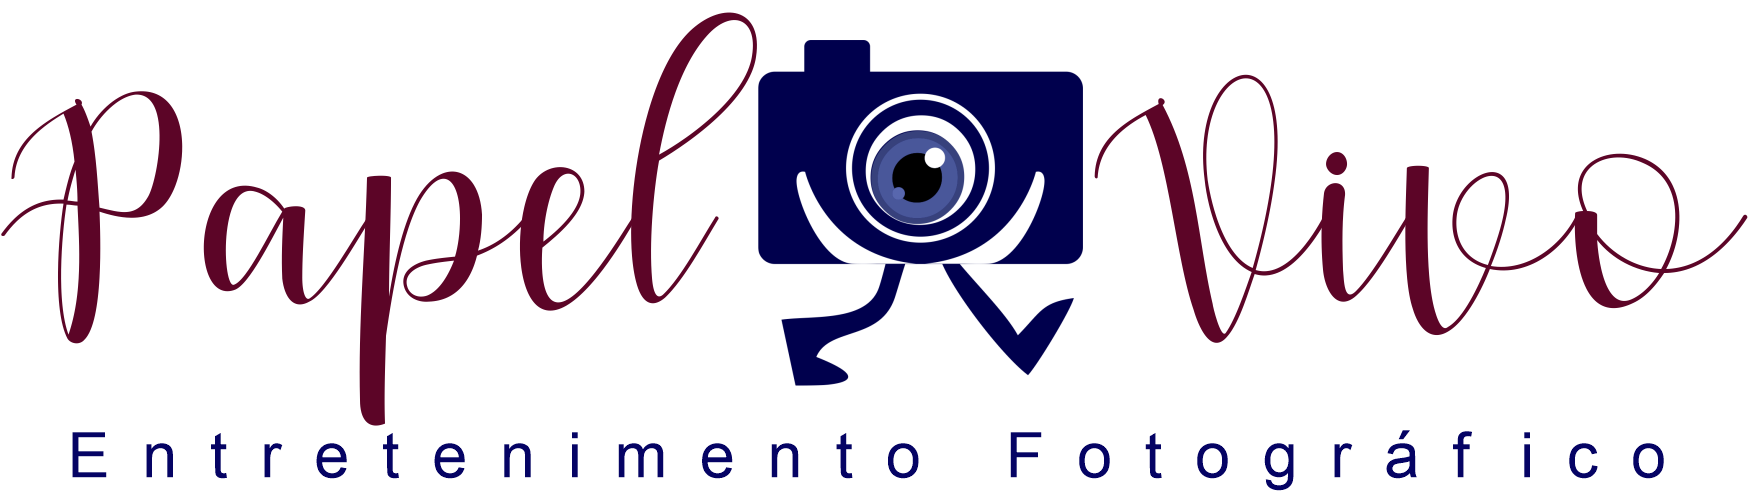 logo papel vivo